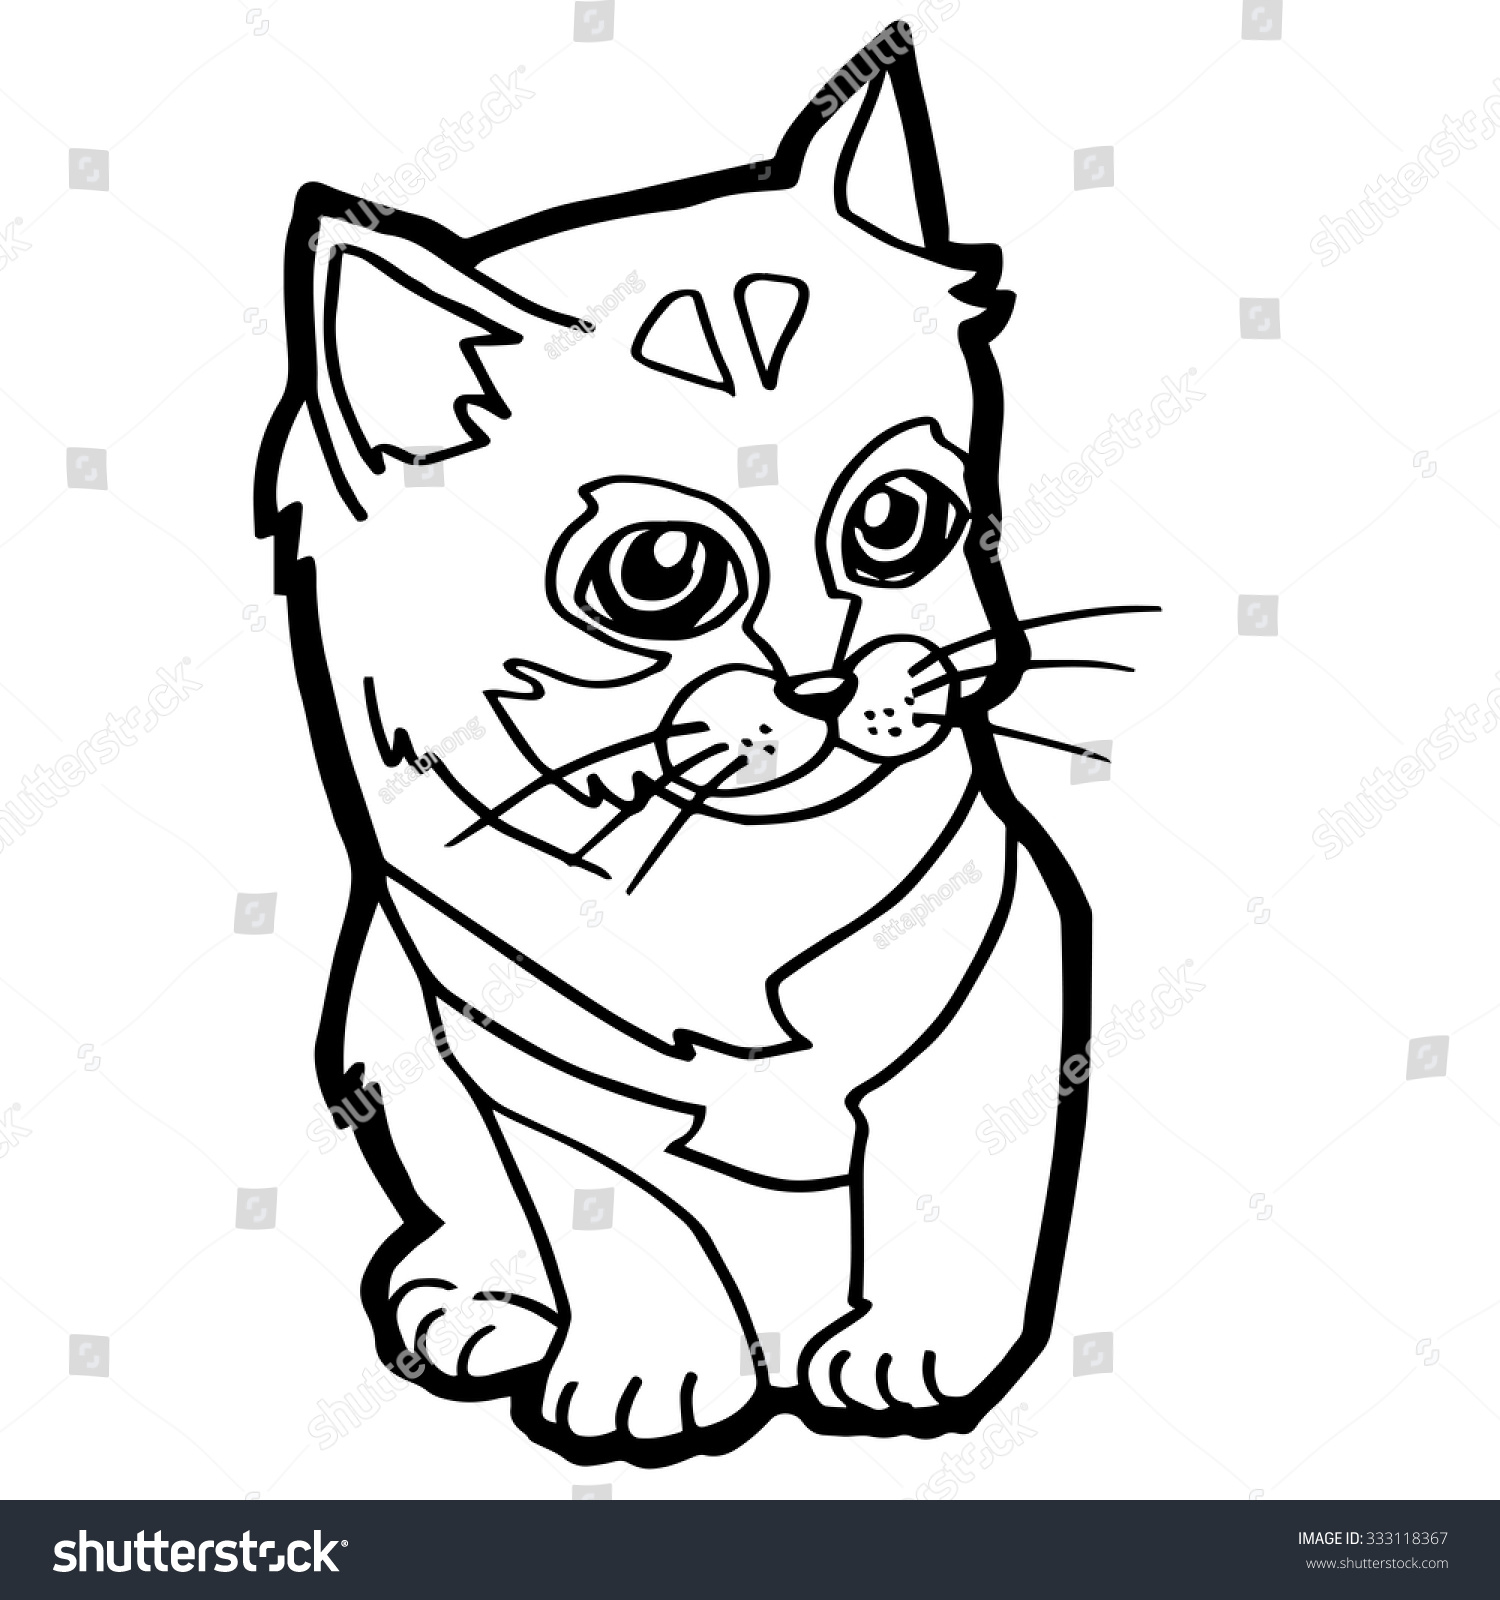 cat coloring page kid stock vector 333118367 shutterstock